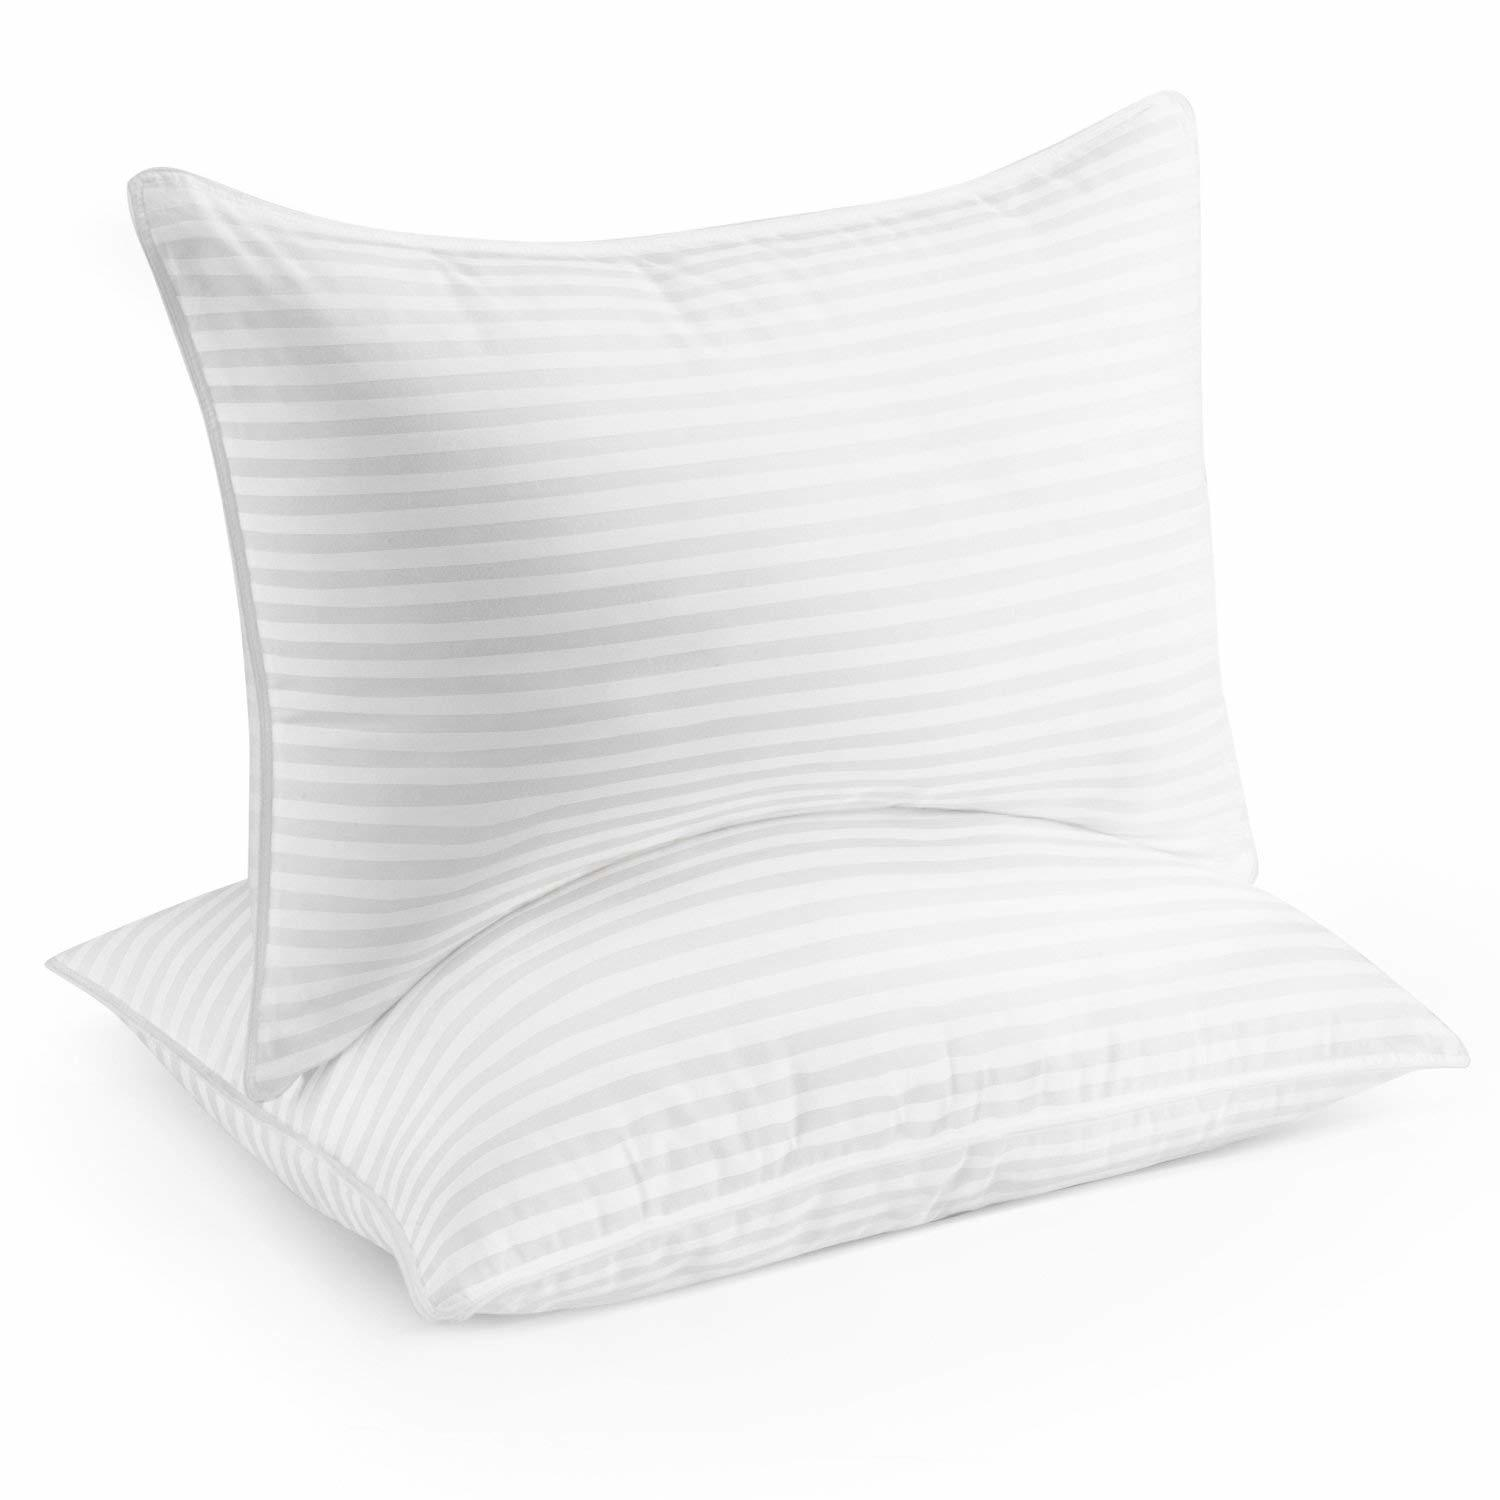 king size pillow reviews